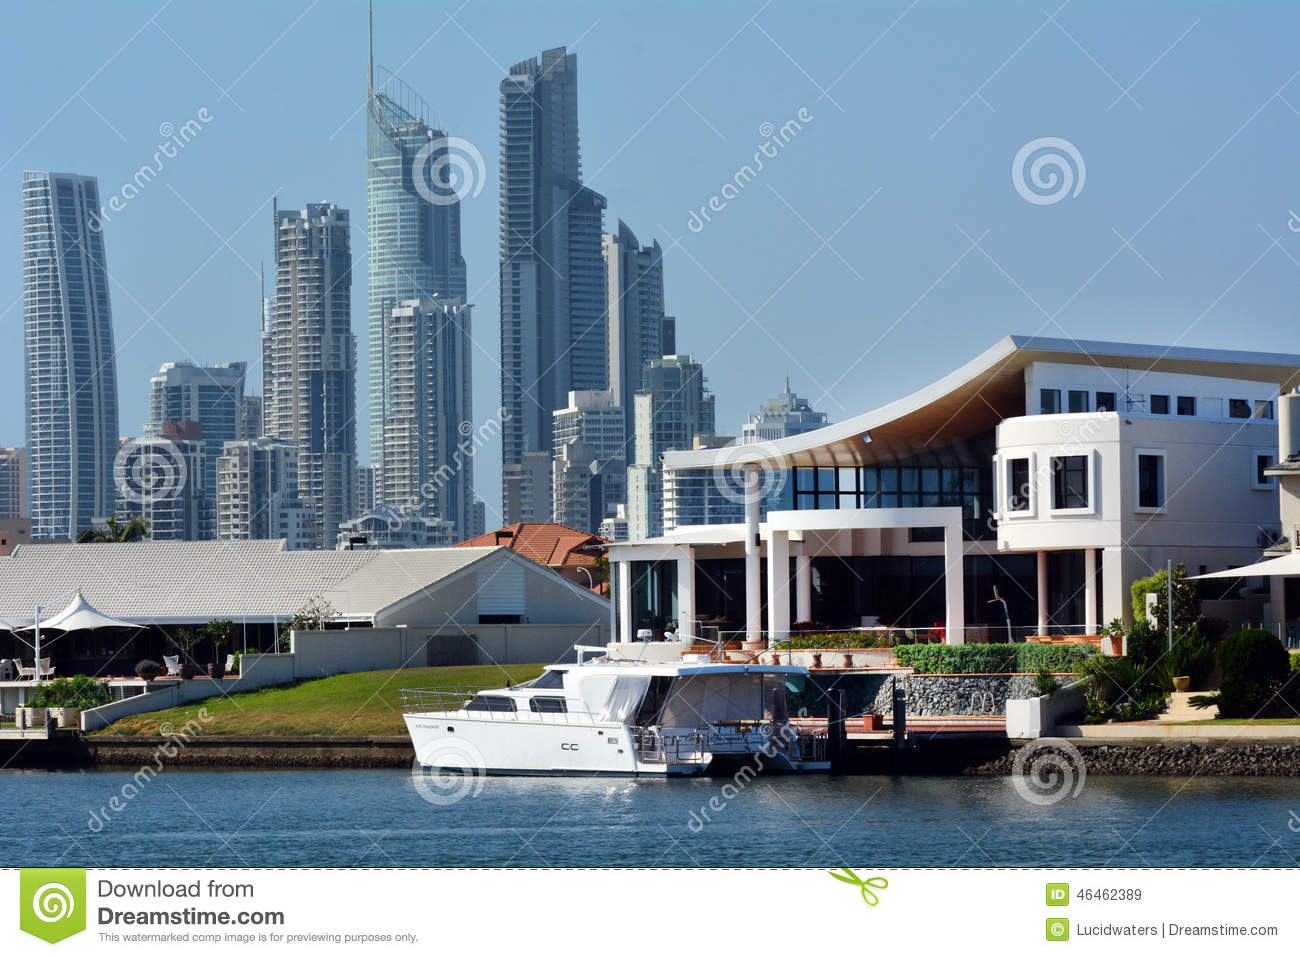 Jackie Chan Luxury Holiday Home Editorial Stock Image Image Of East District 46462389